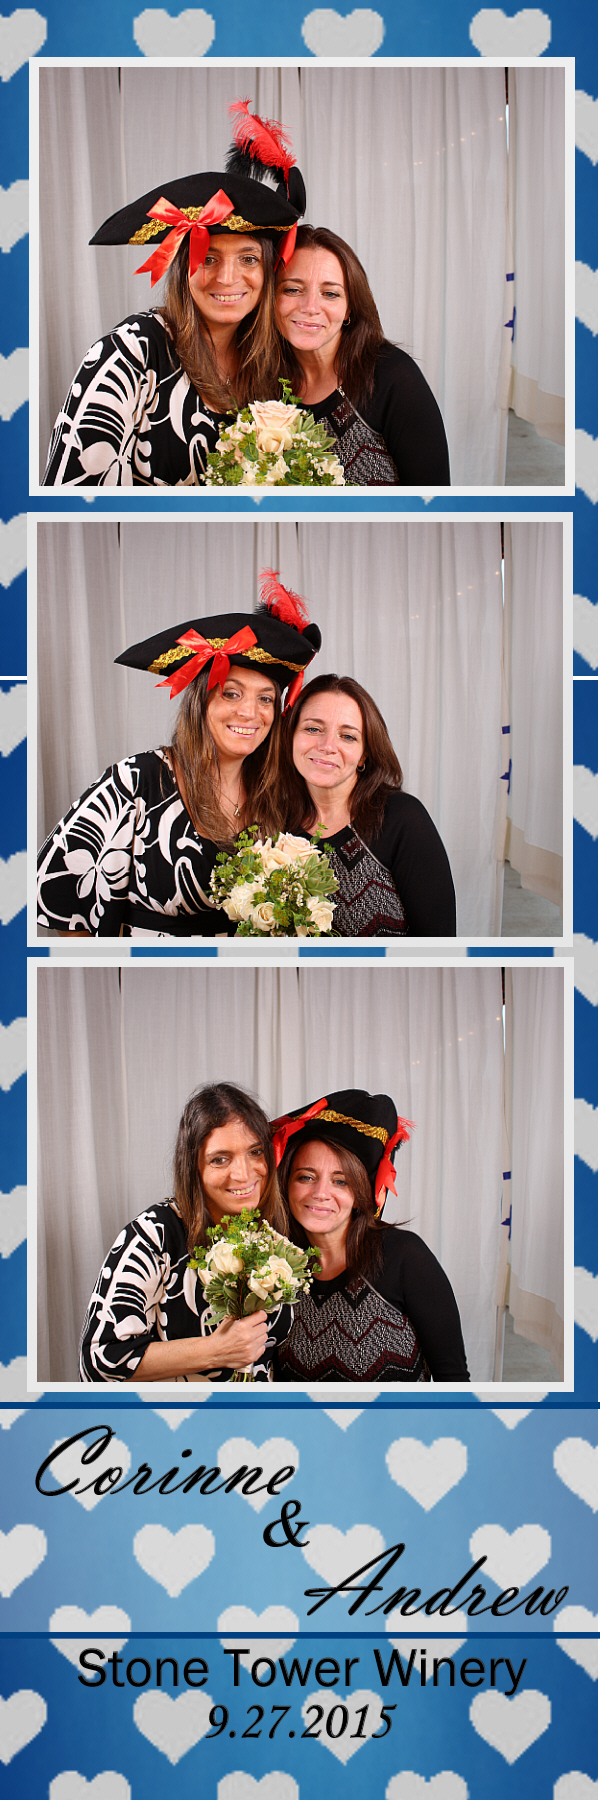 Guest House Events Photo Booth C&A (19).jpg